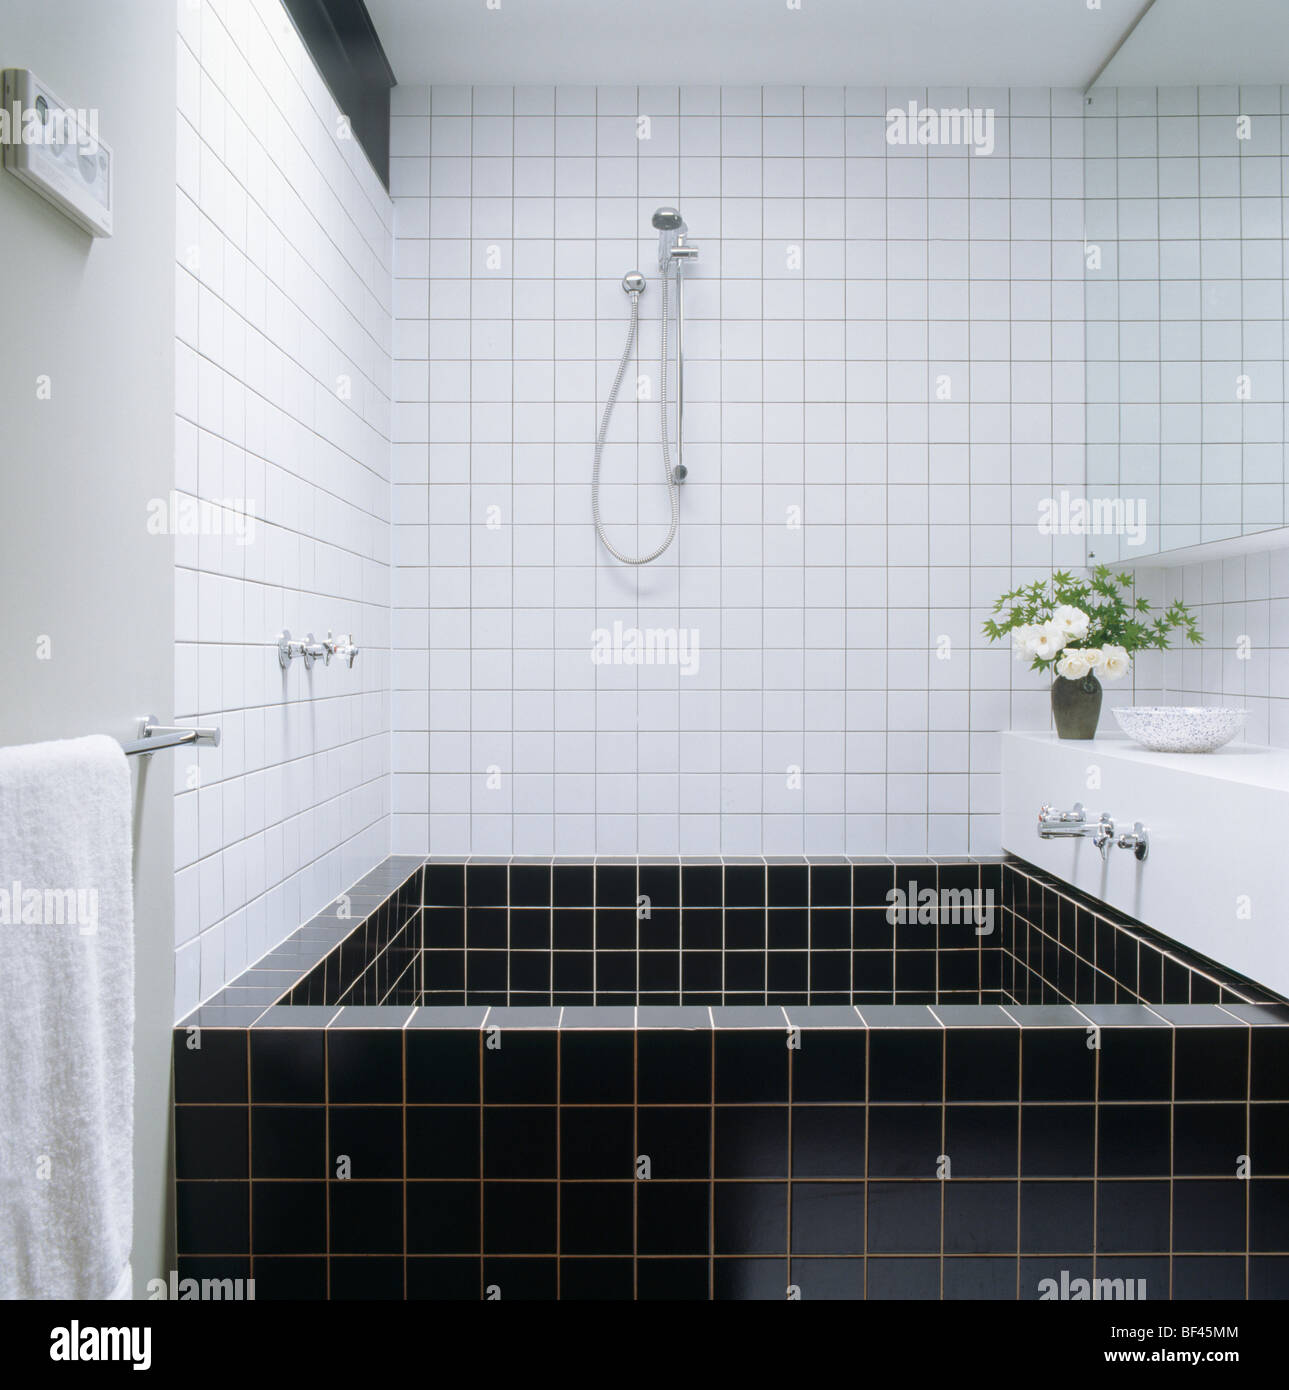 Black Tiled Bathroom Tiled Bath Stock Photos And Tiled Bath Stock Images Alamy